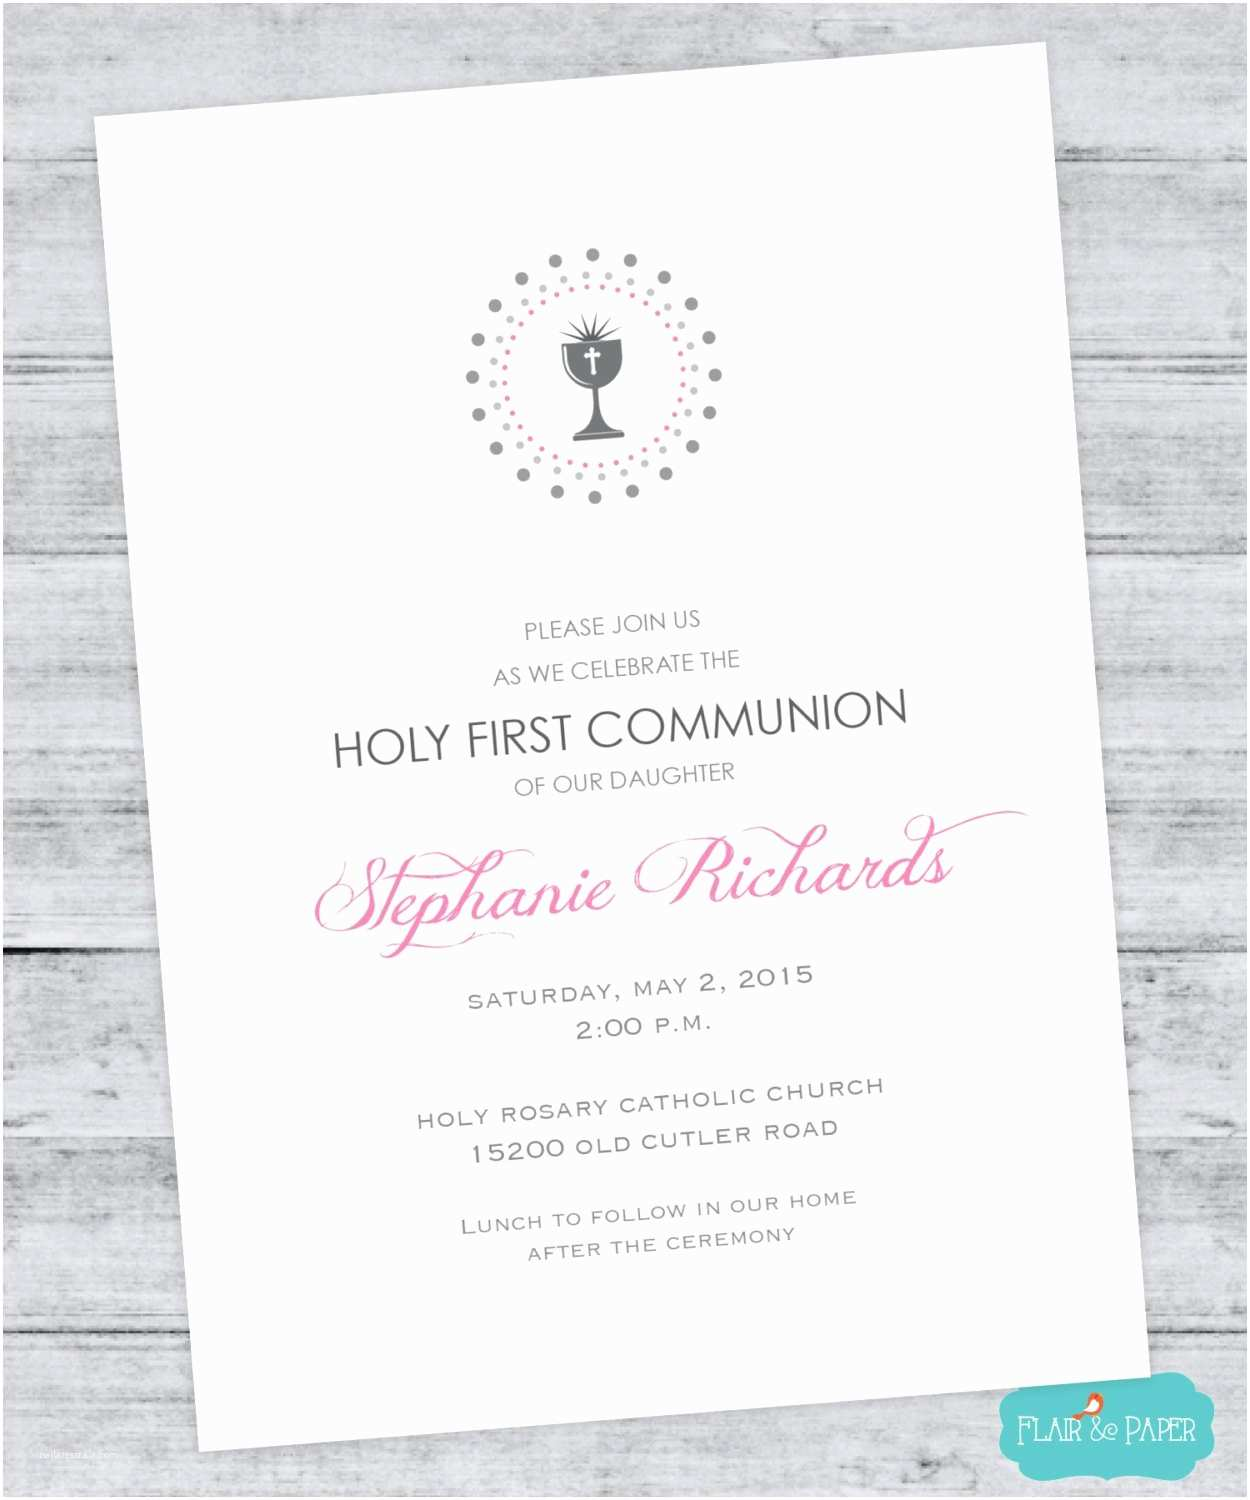 First Holy Communion Invitations First Munion Invitation Holy First Munion by